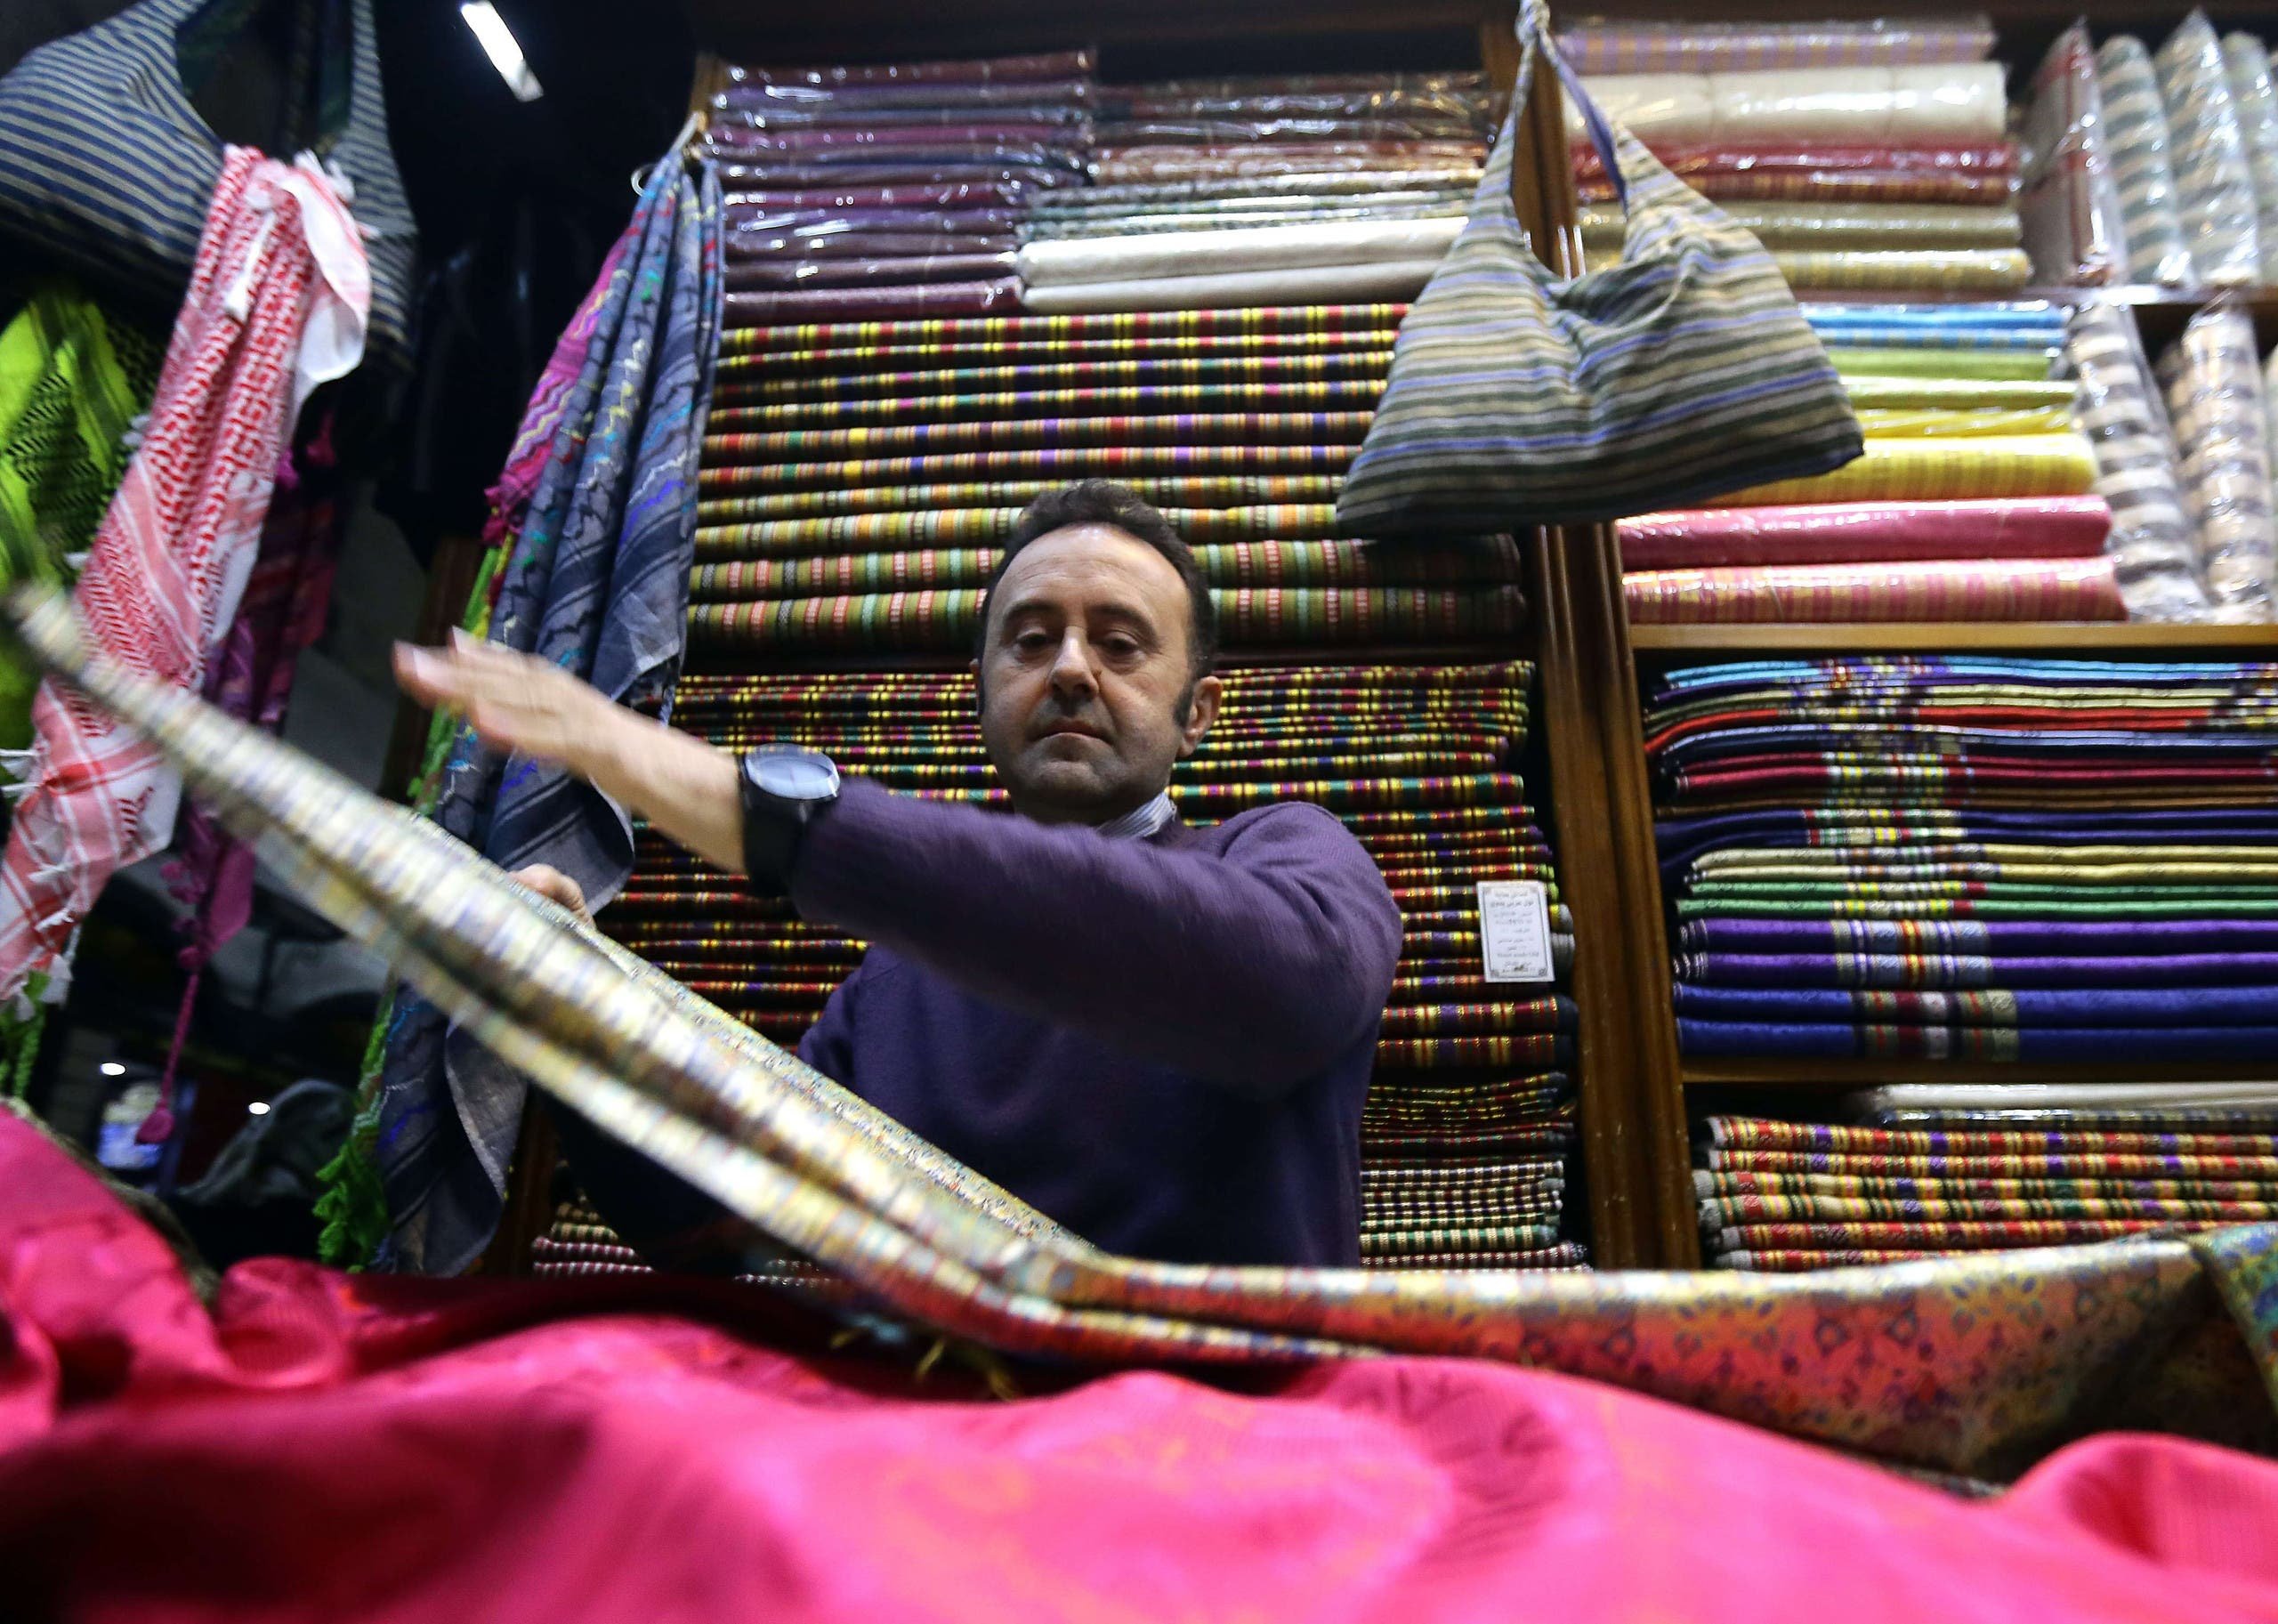 Bahaa al-Takriti, who weaves the richly embroidered aghbani cloths often used as table covers, shows off his products at his shop in the capital, Damascus, on December 1, 2015. AFP